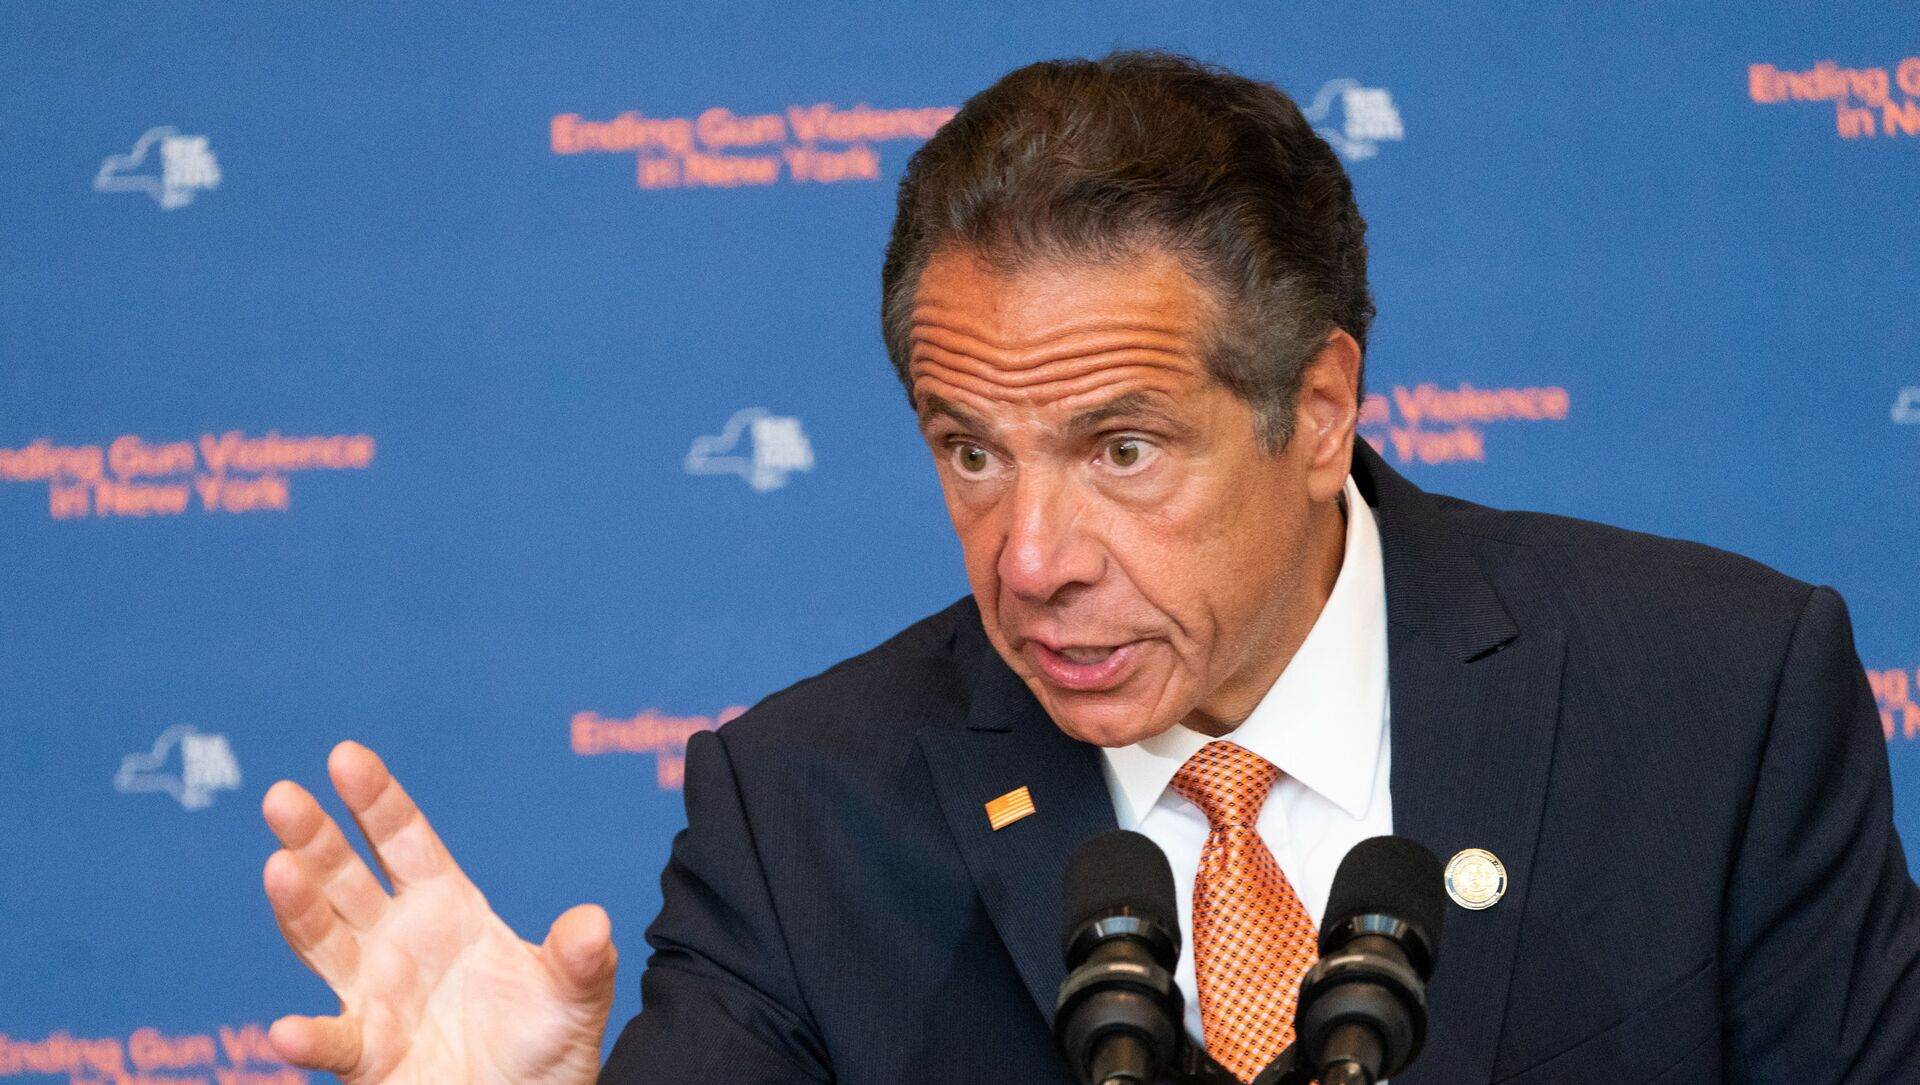 New York Governor Andrew Cuomo speaks during a news conference, to make an announcement that Gun Manufacturers are Liable for the harm their products cause, in New York City, New York, U.S., July 6, 2021 - Sputnik International, 1920, 26.07.2021